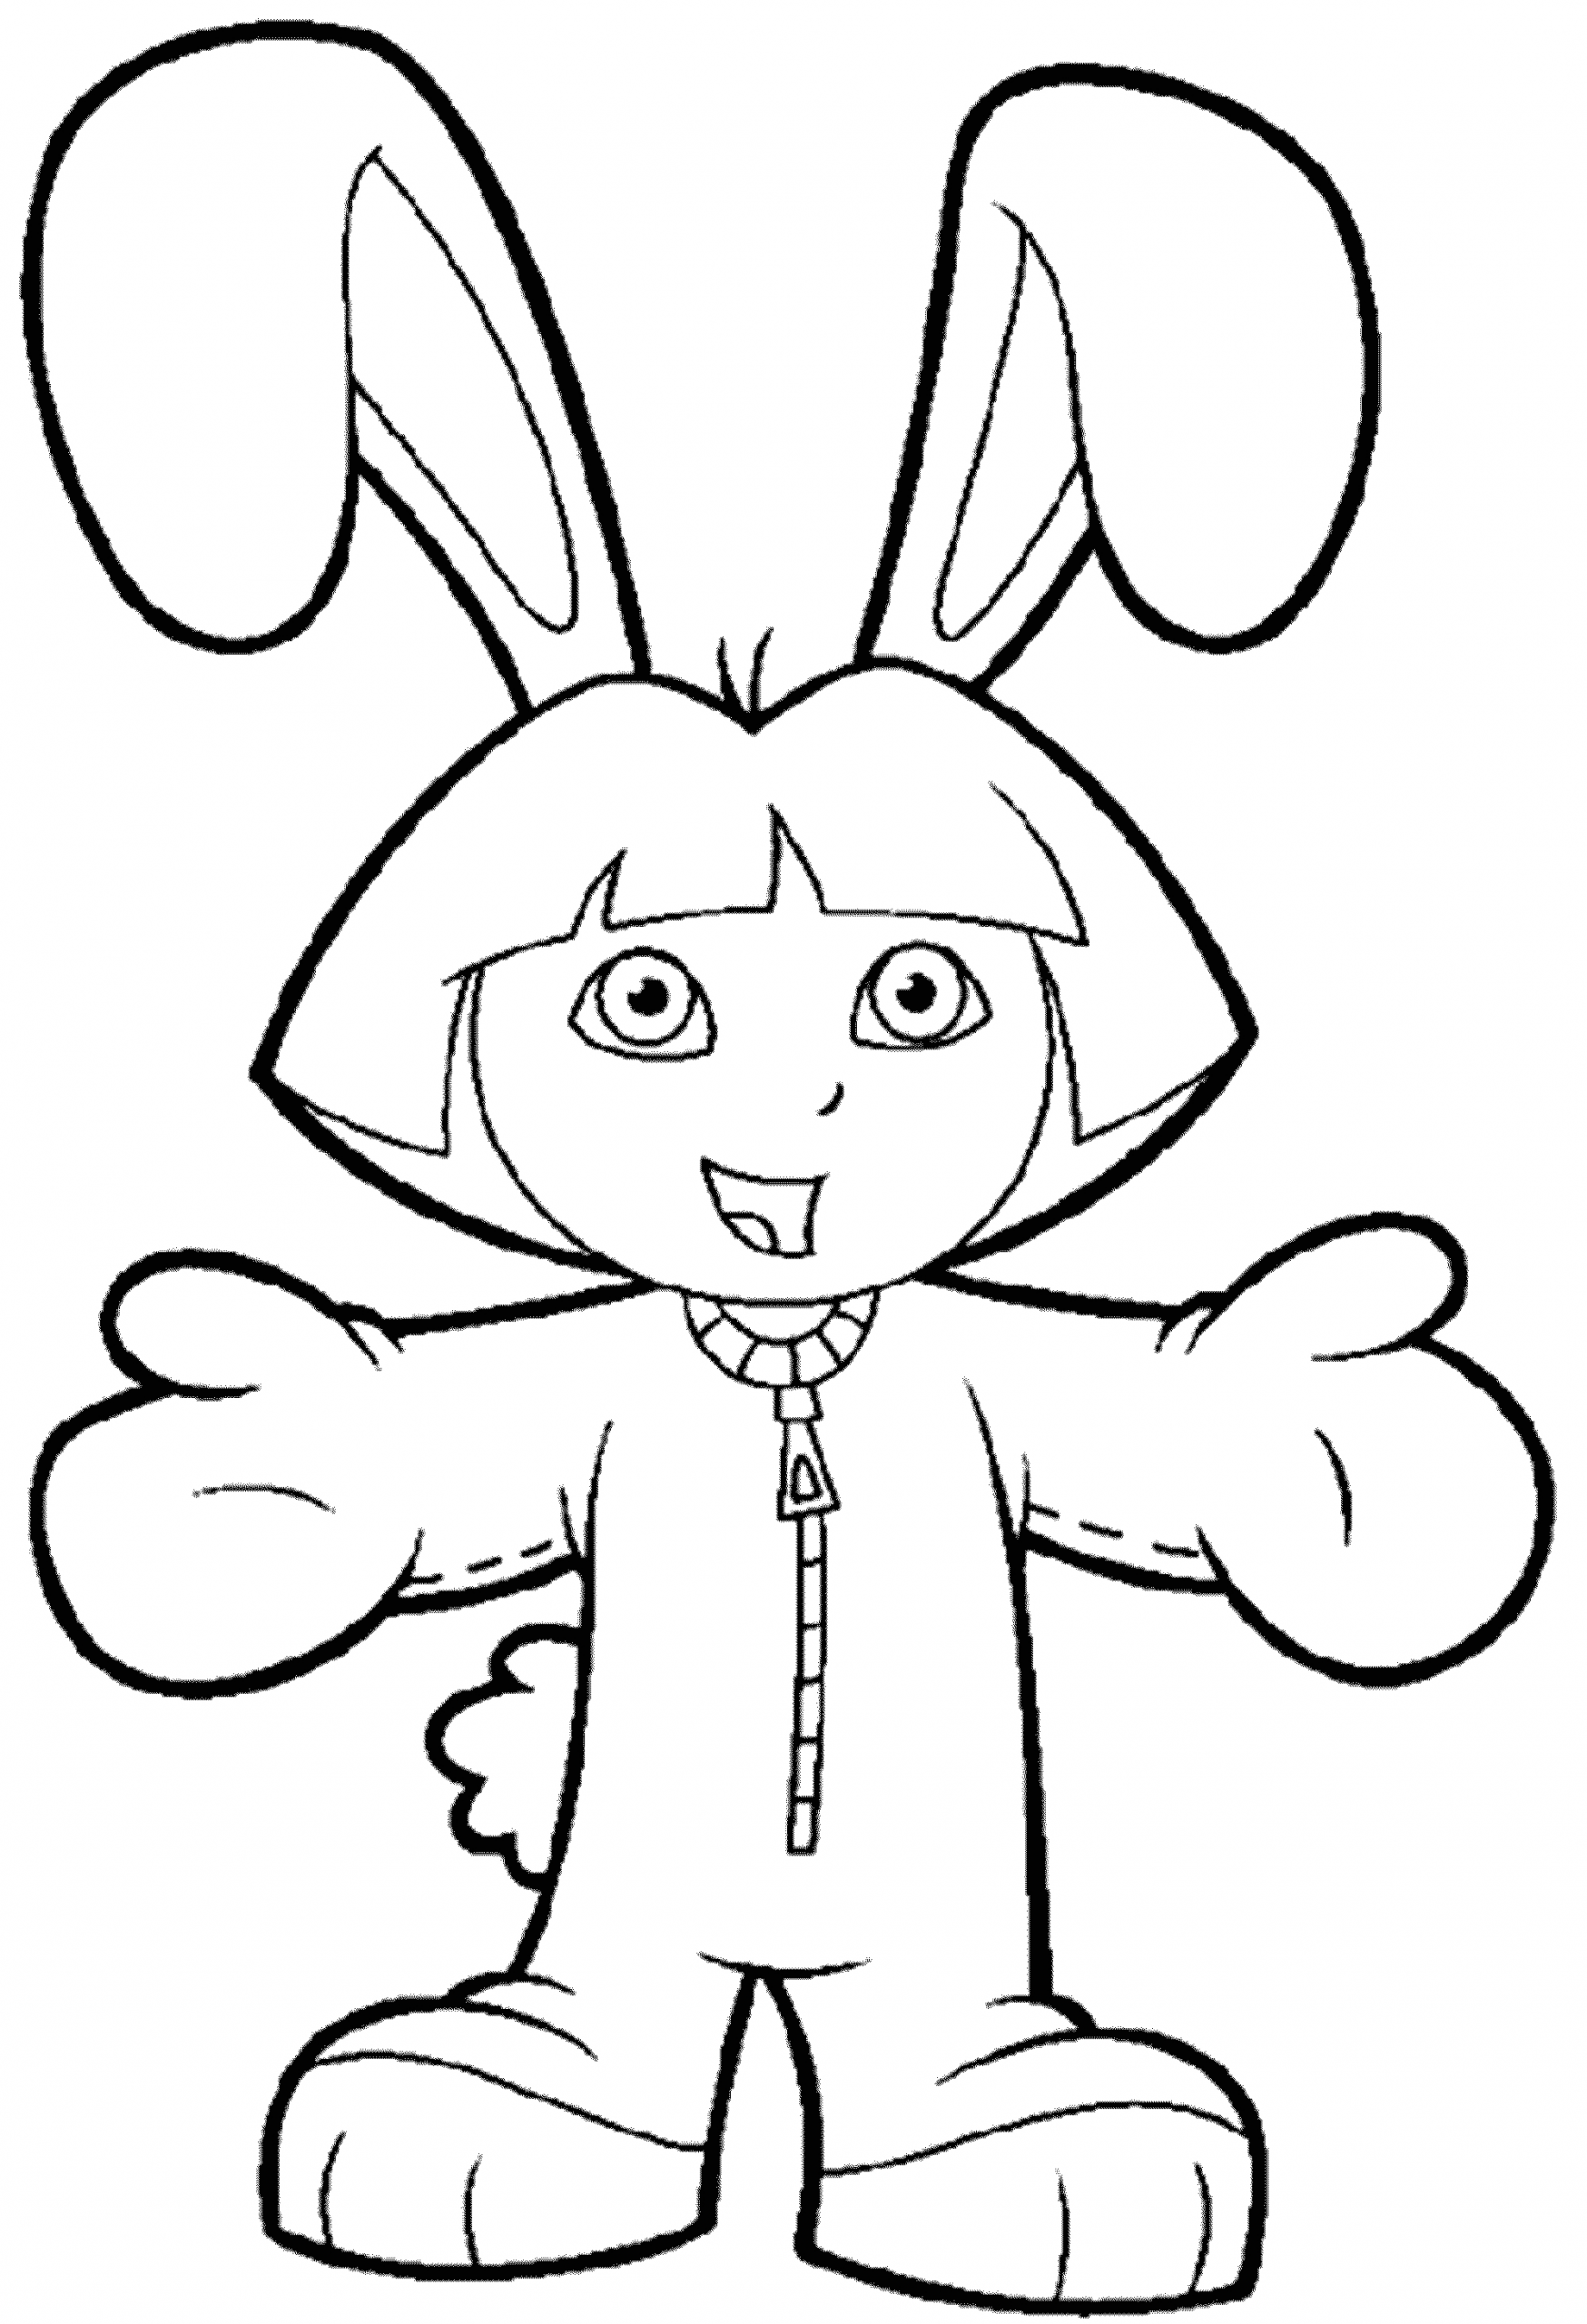 dora the explorer map coloring pages